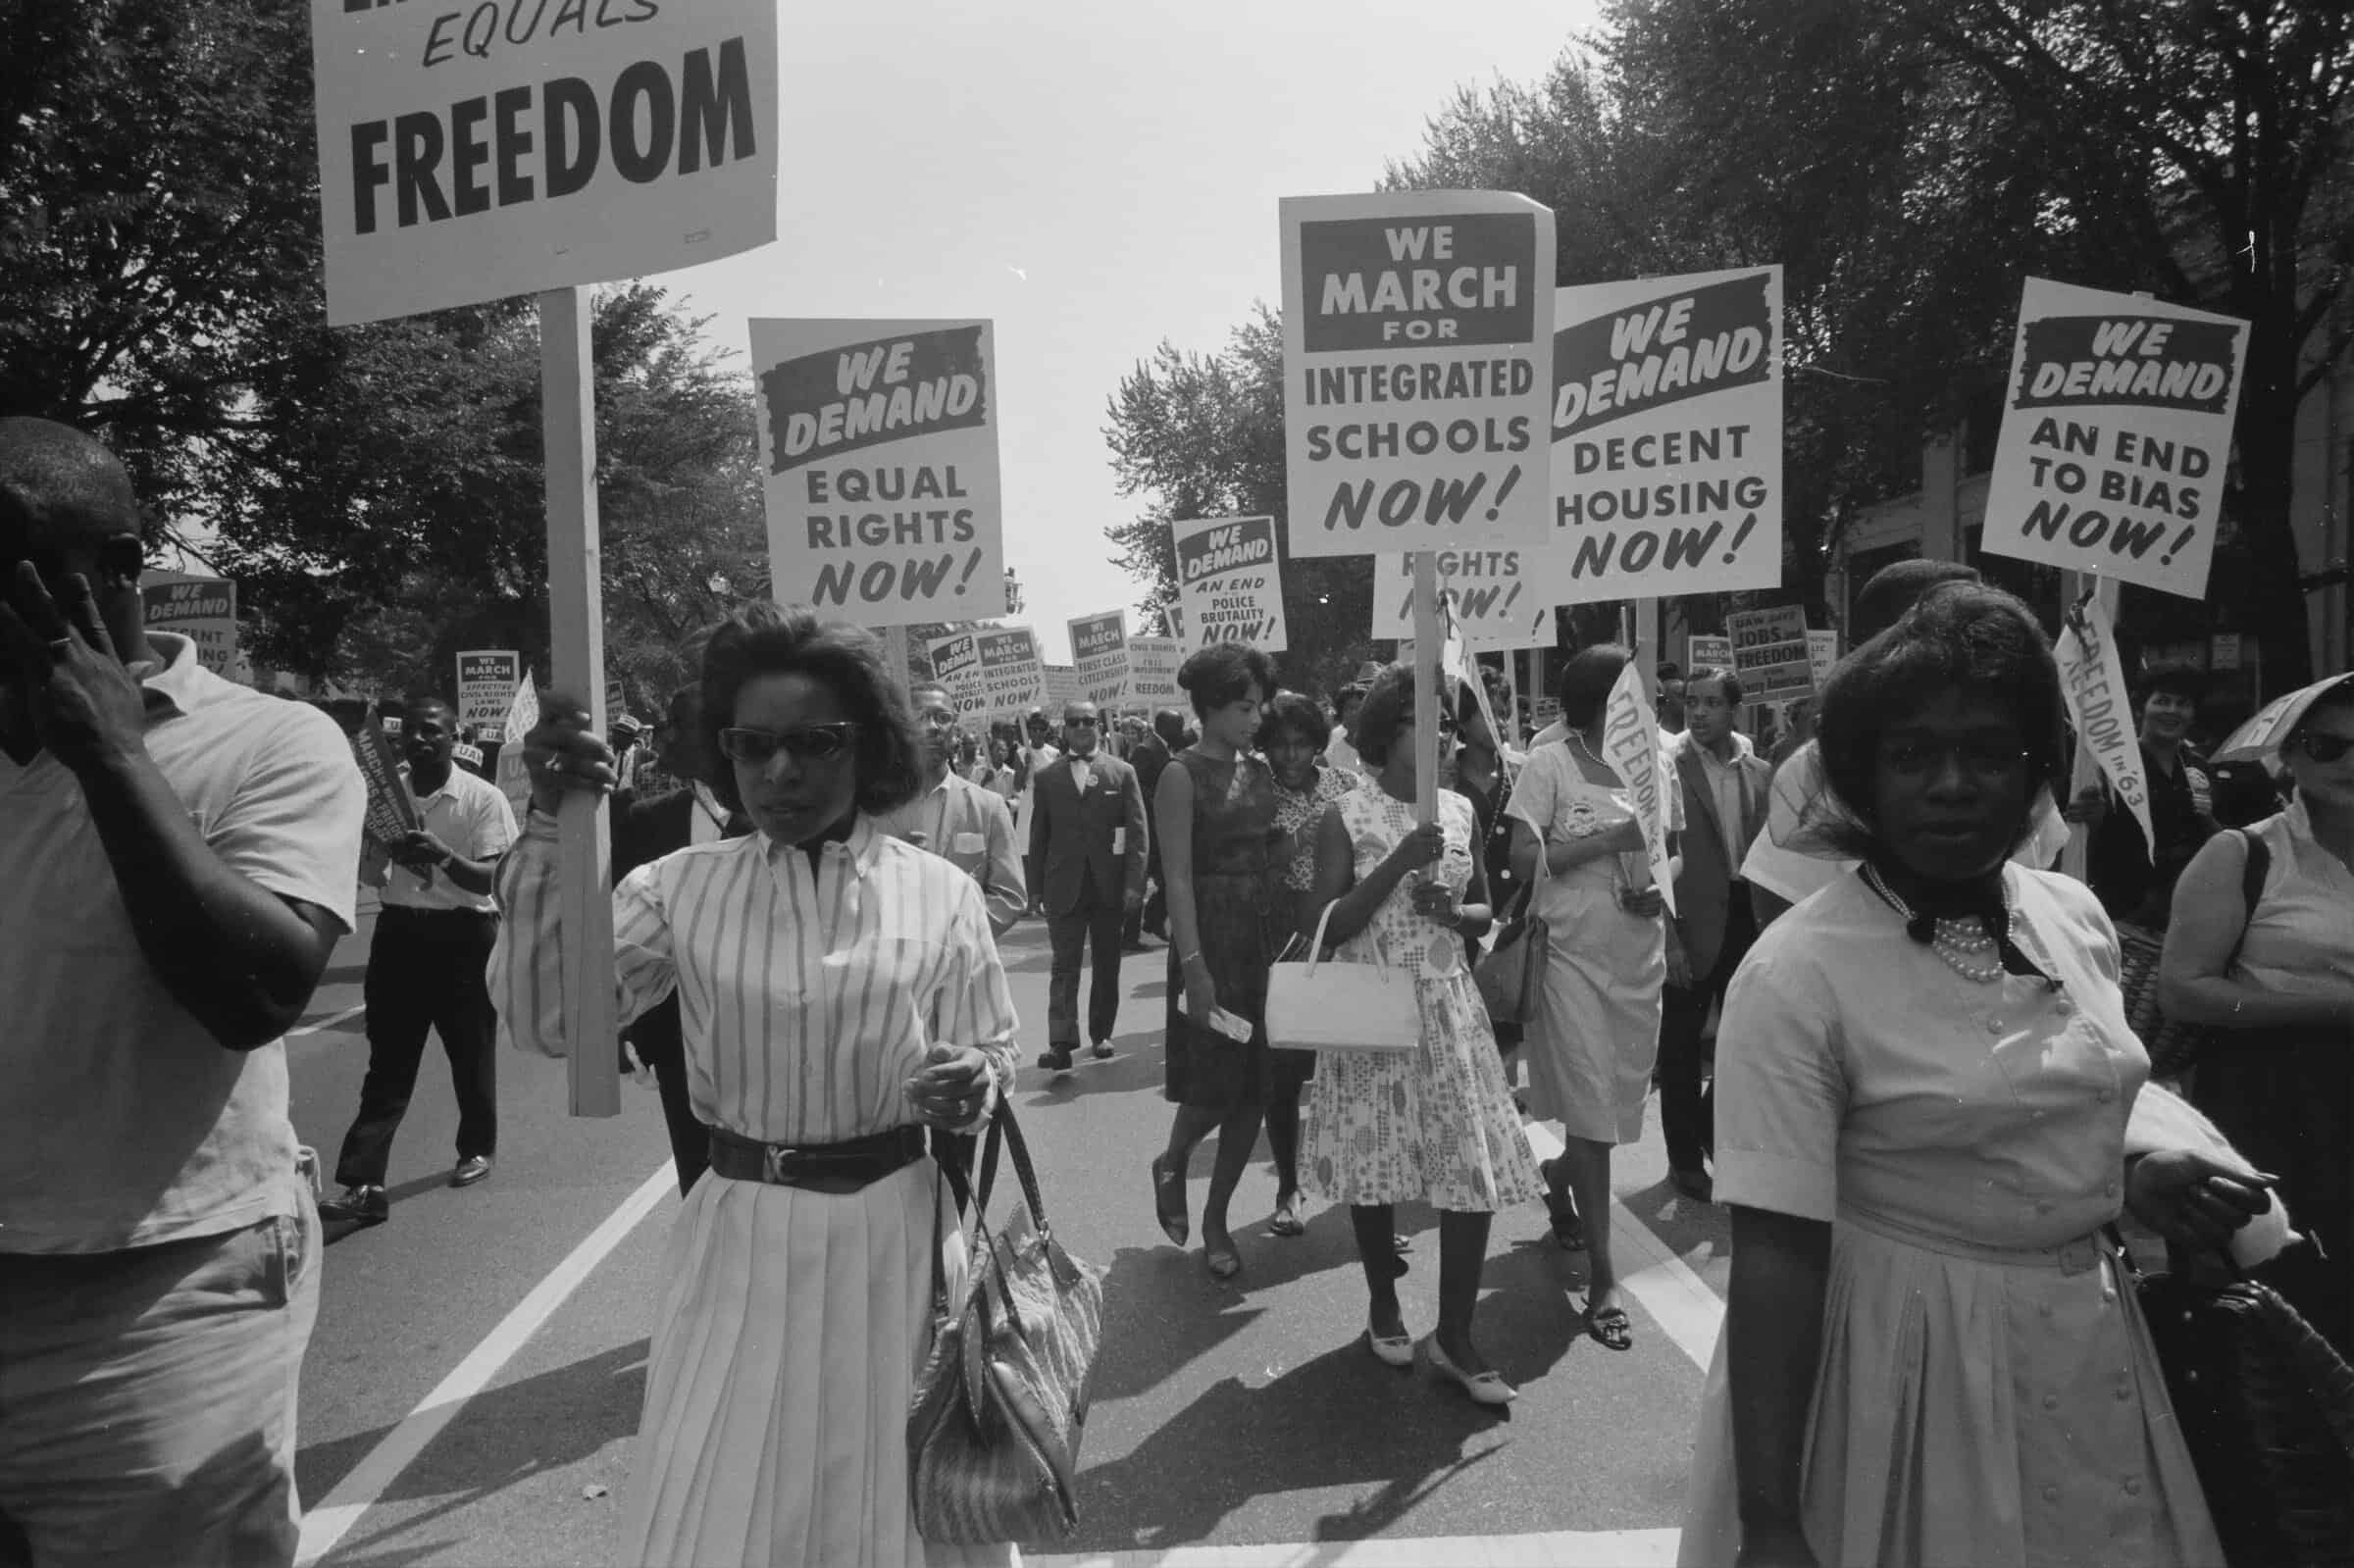 How History Whitewashed The Civil Rights Movement: The Fight For Equality is Messy